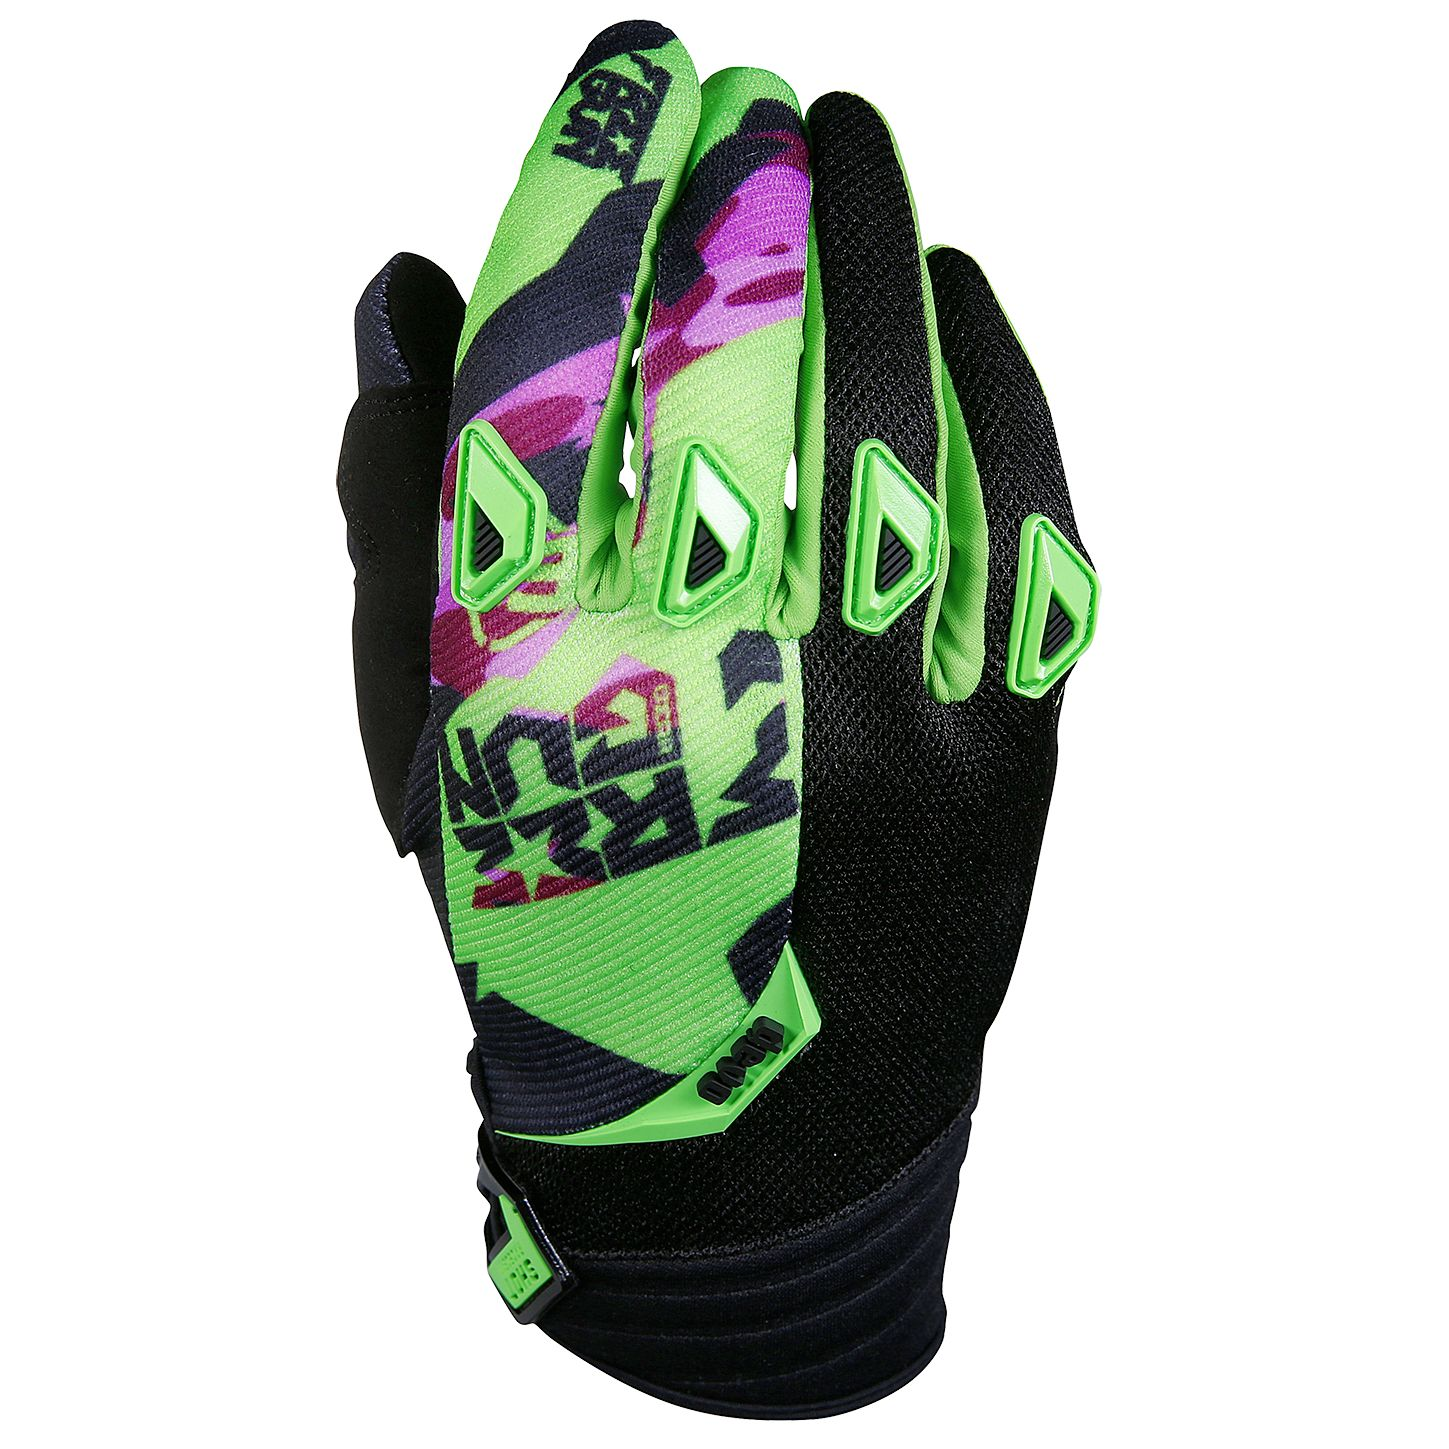 gants cross shot destockage devo honor neon vert violet 2017 equipement du cross access. Black Bedroom Furniture Sets. Home Design Ideas